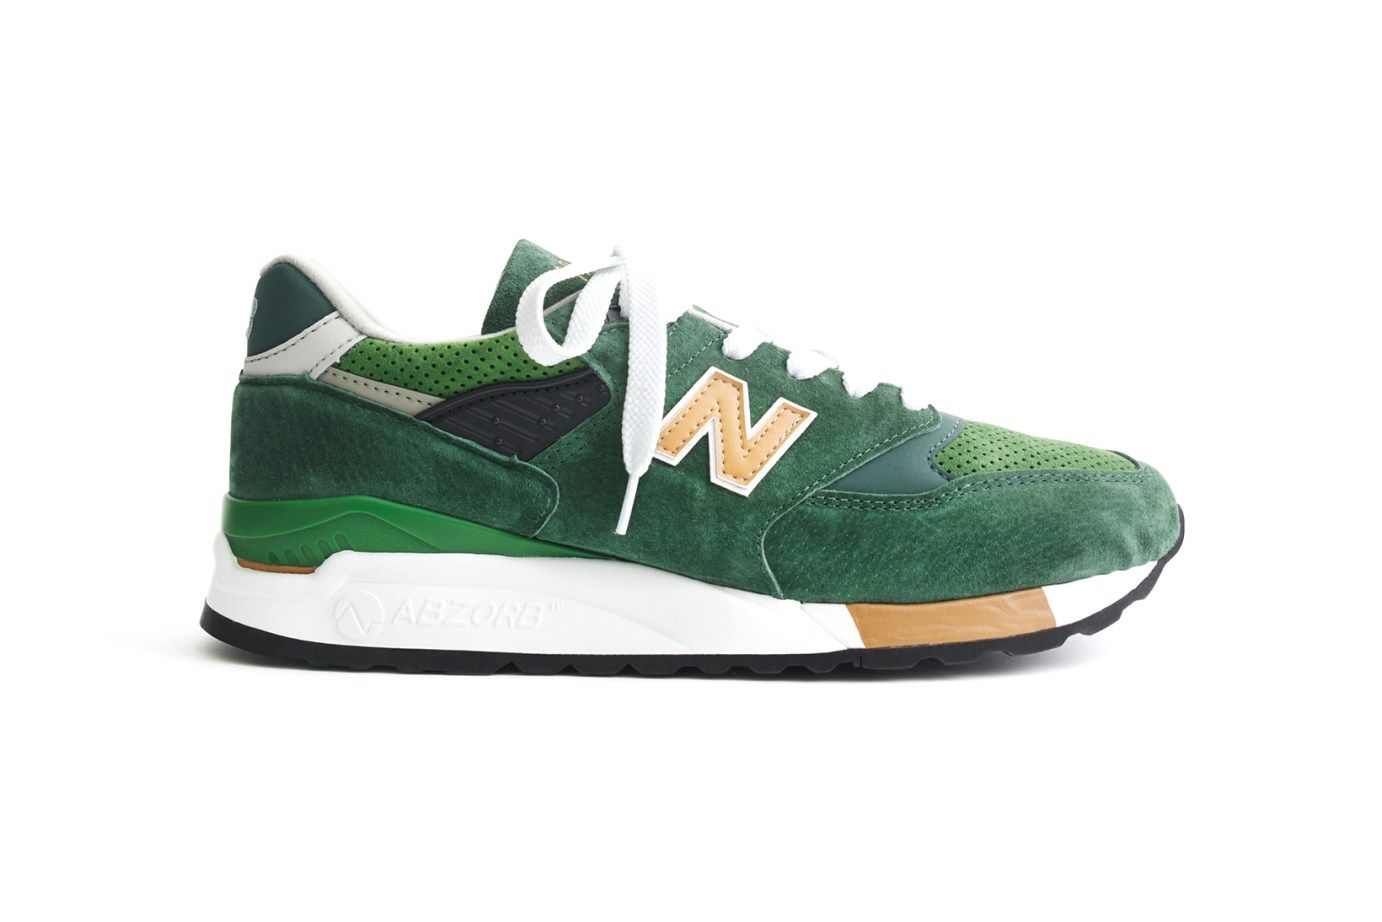 J Crew X New Balance 998 Green Back